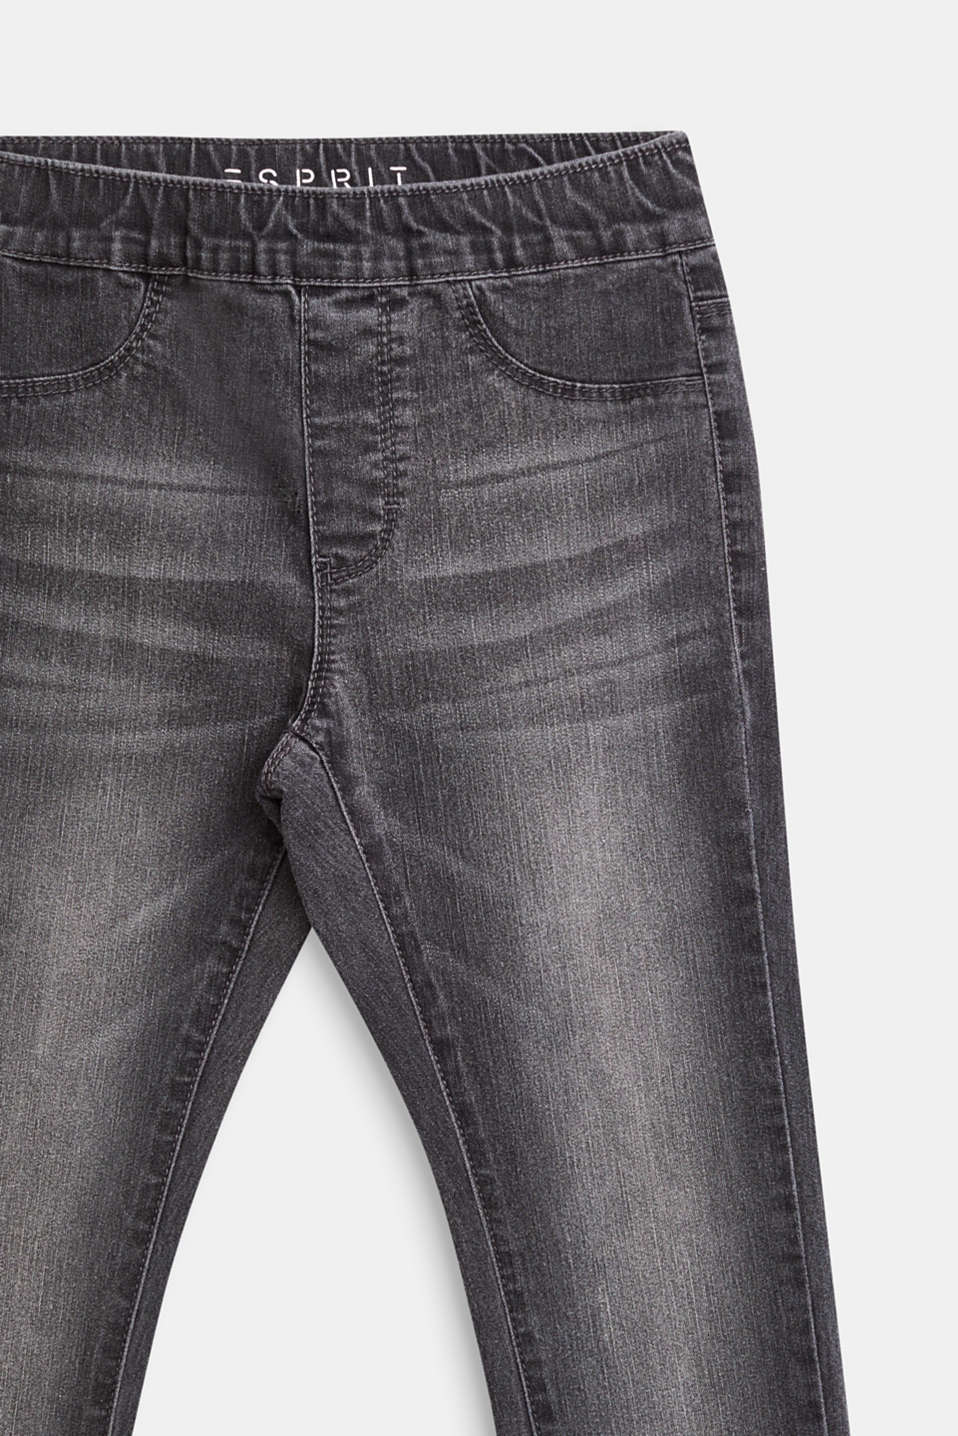 Jeggings with an elasticated waistband, LCGREY DENIM, detail image number 2